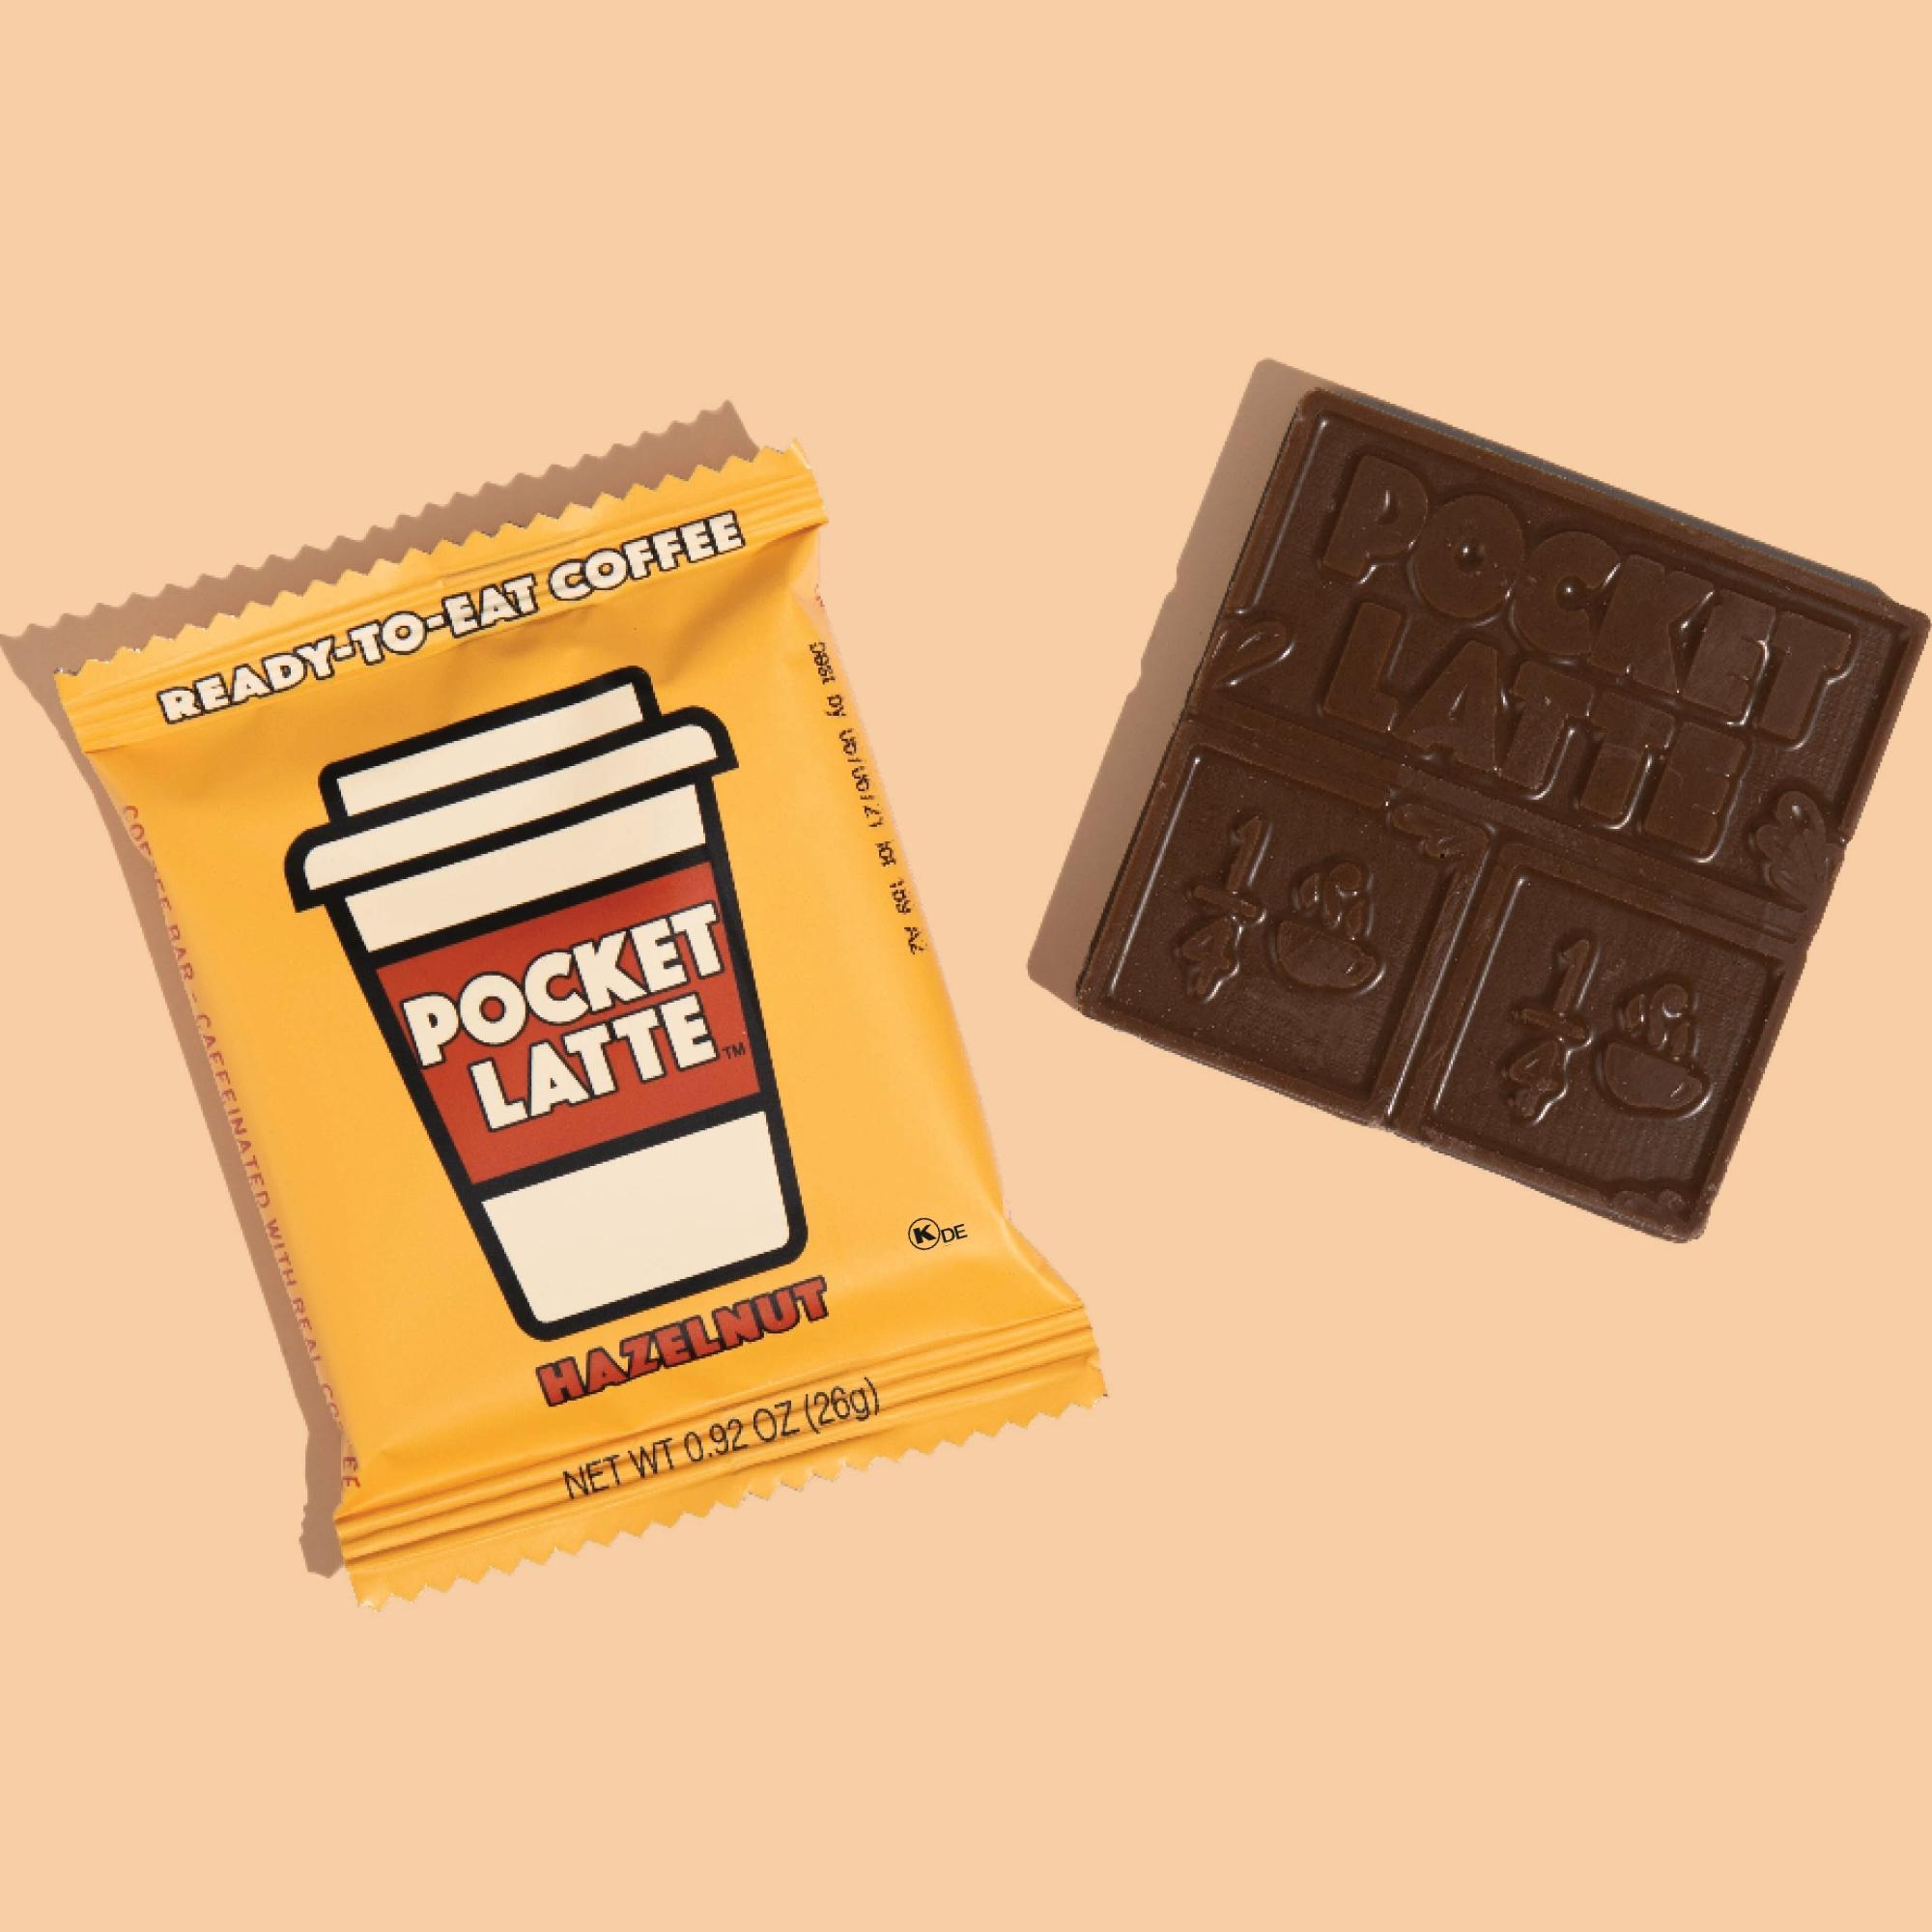 Pocket Latte Ready to Eat Coffee Chocolate Squares